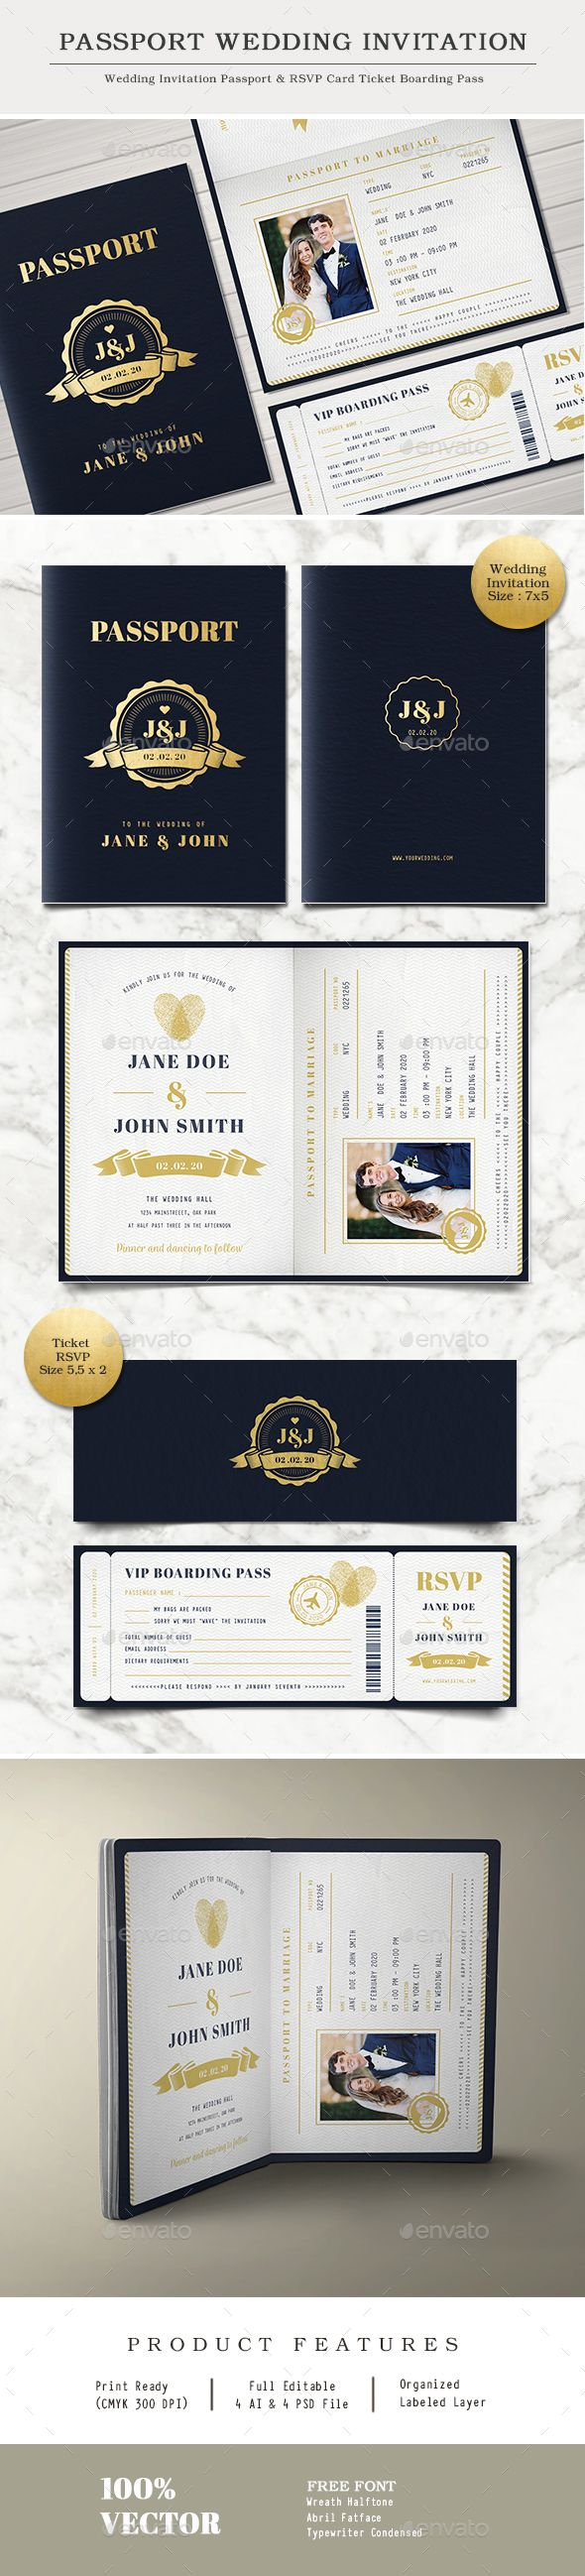 25 best ideas about passport wedding invitations on pinterest passport invitations. Black Bedroom Furniture Sets. Home Design Ideas